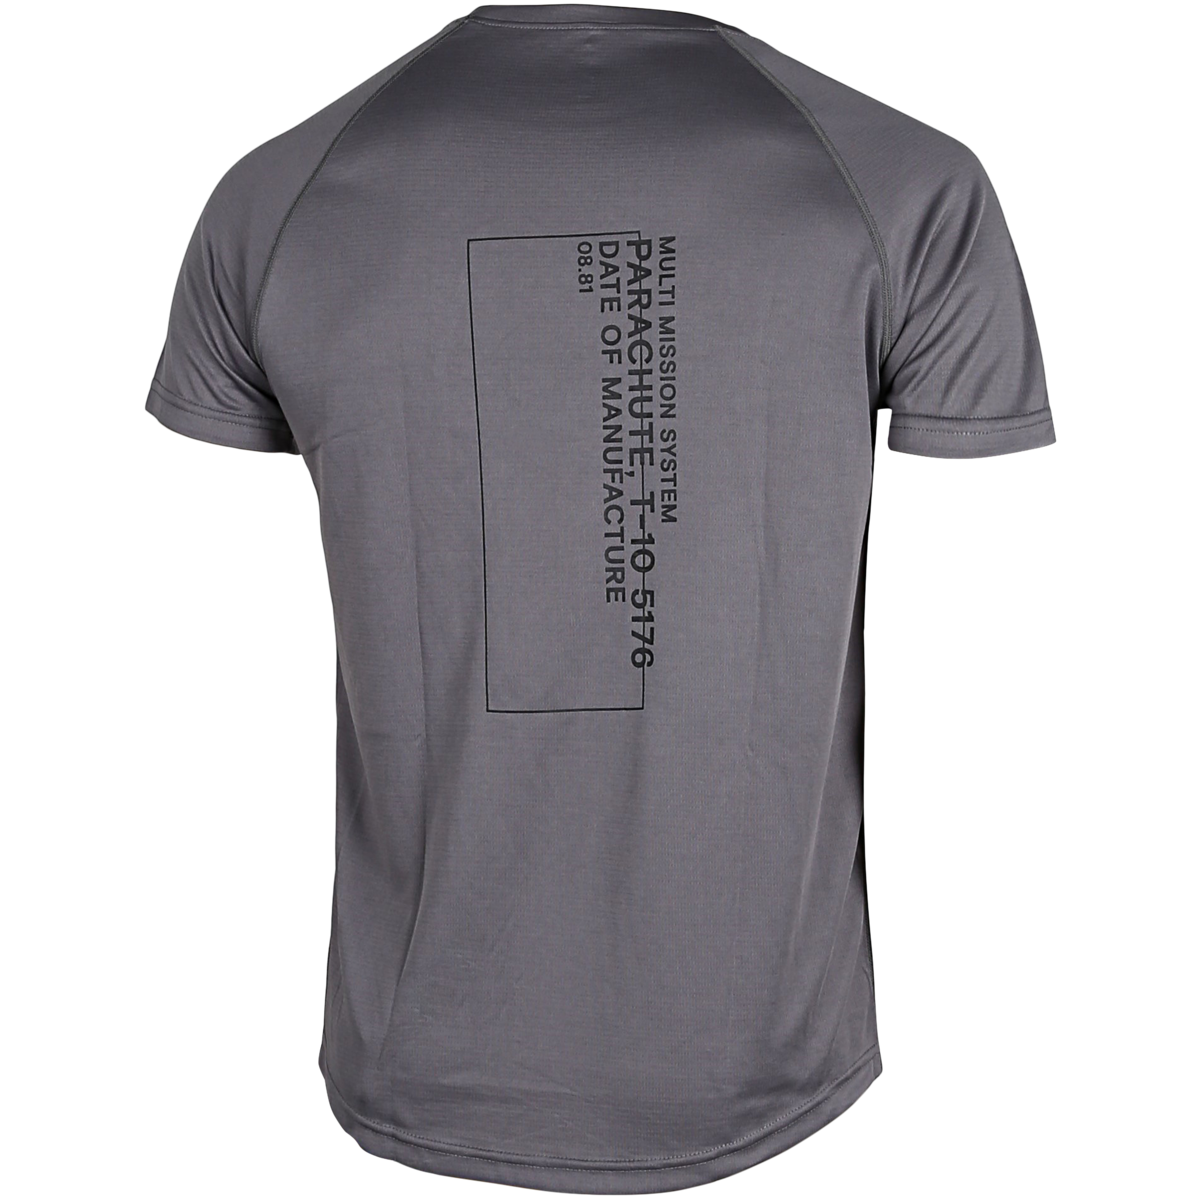 Newline Training T shirt